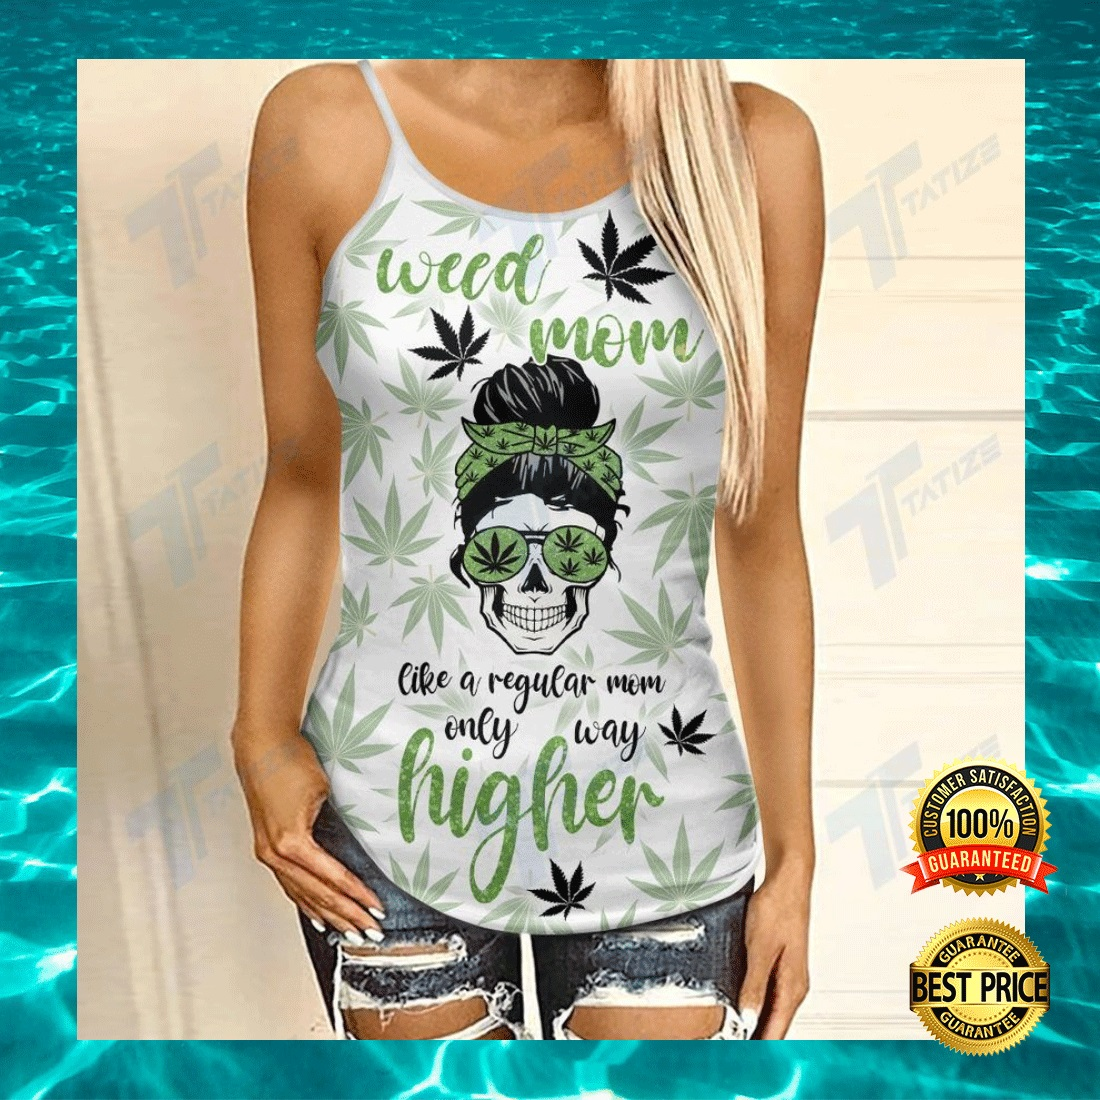 WEED MOM LIKE A REGULAR MOM ONLY WAY HIGHER CRISS-CROSS TANK TOP 4